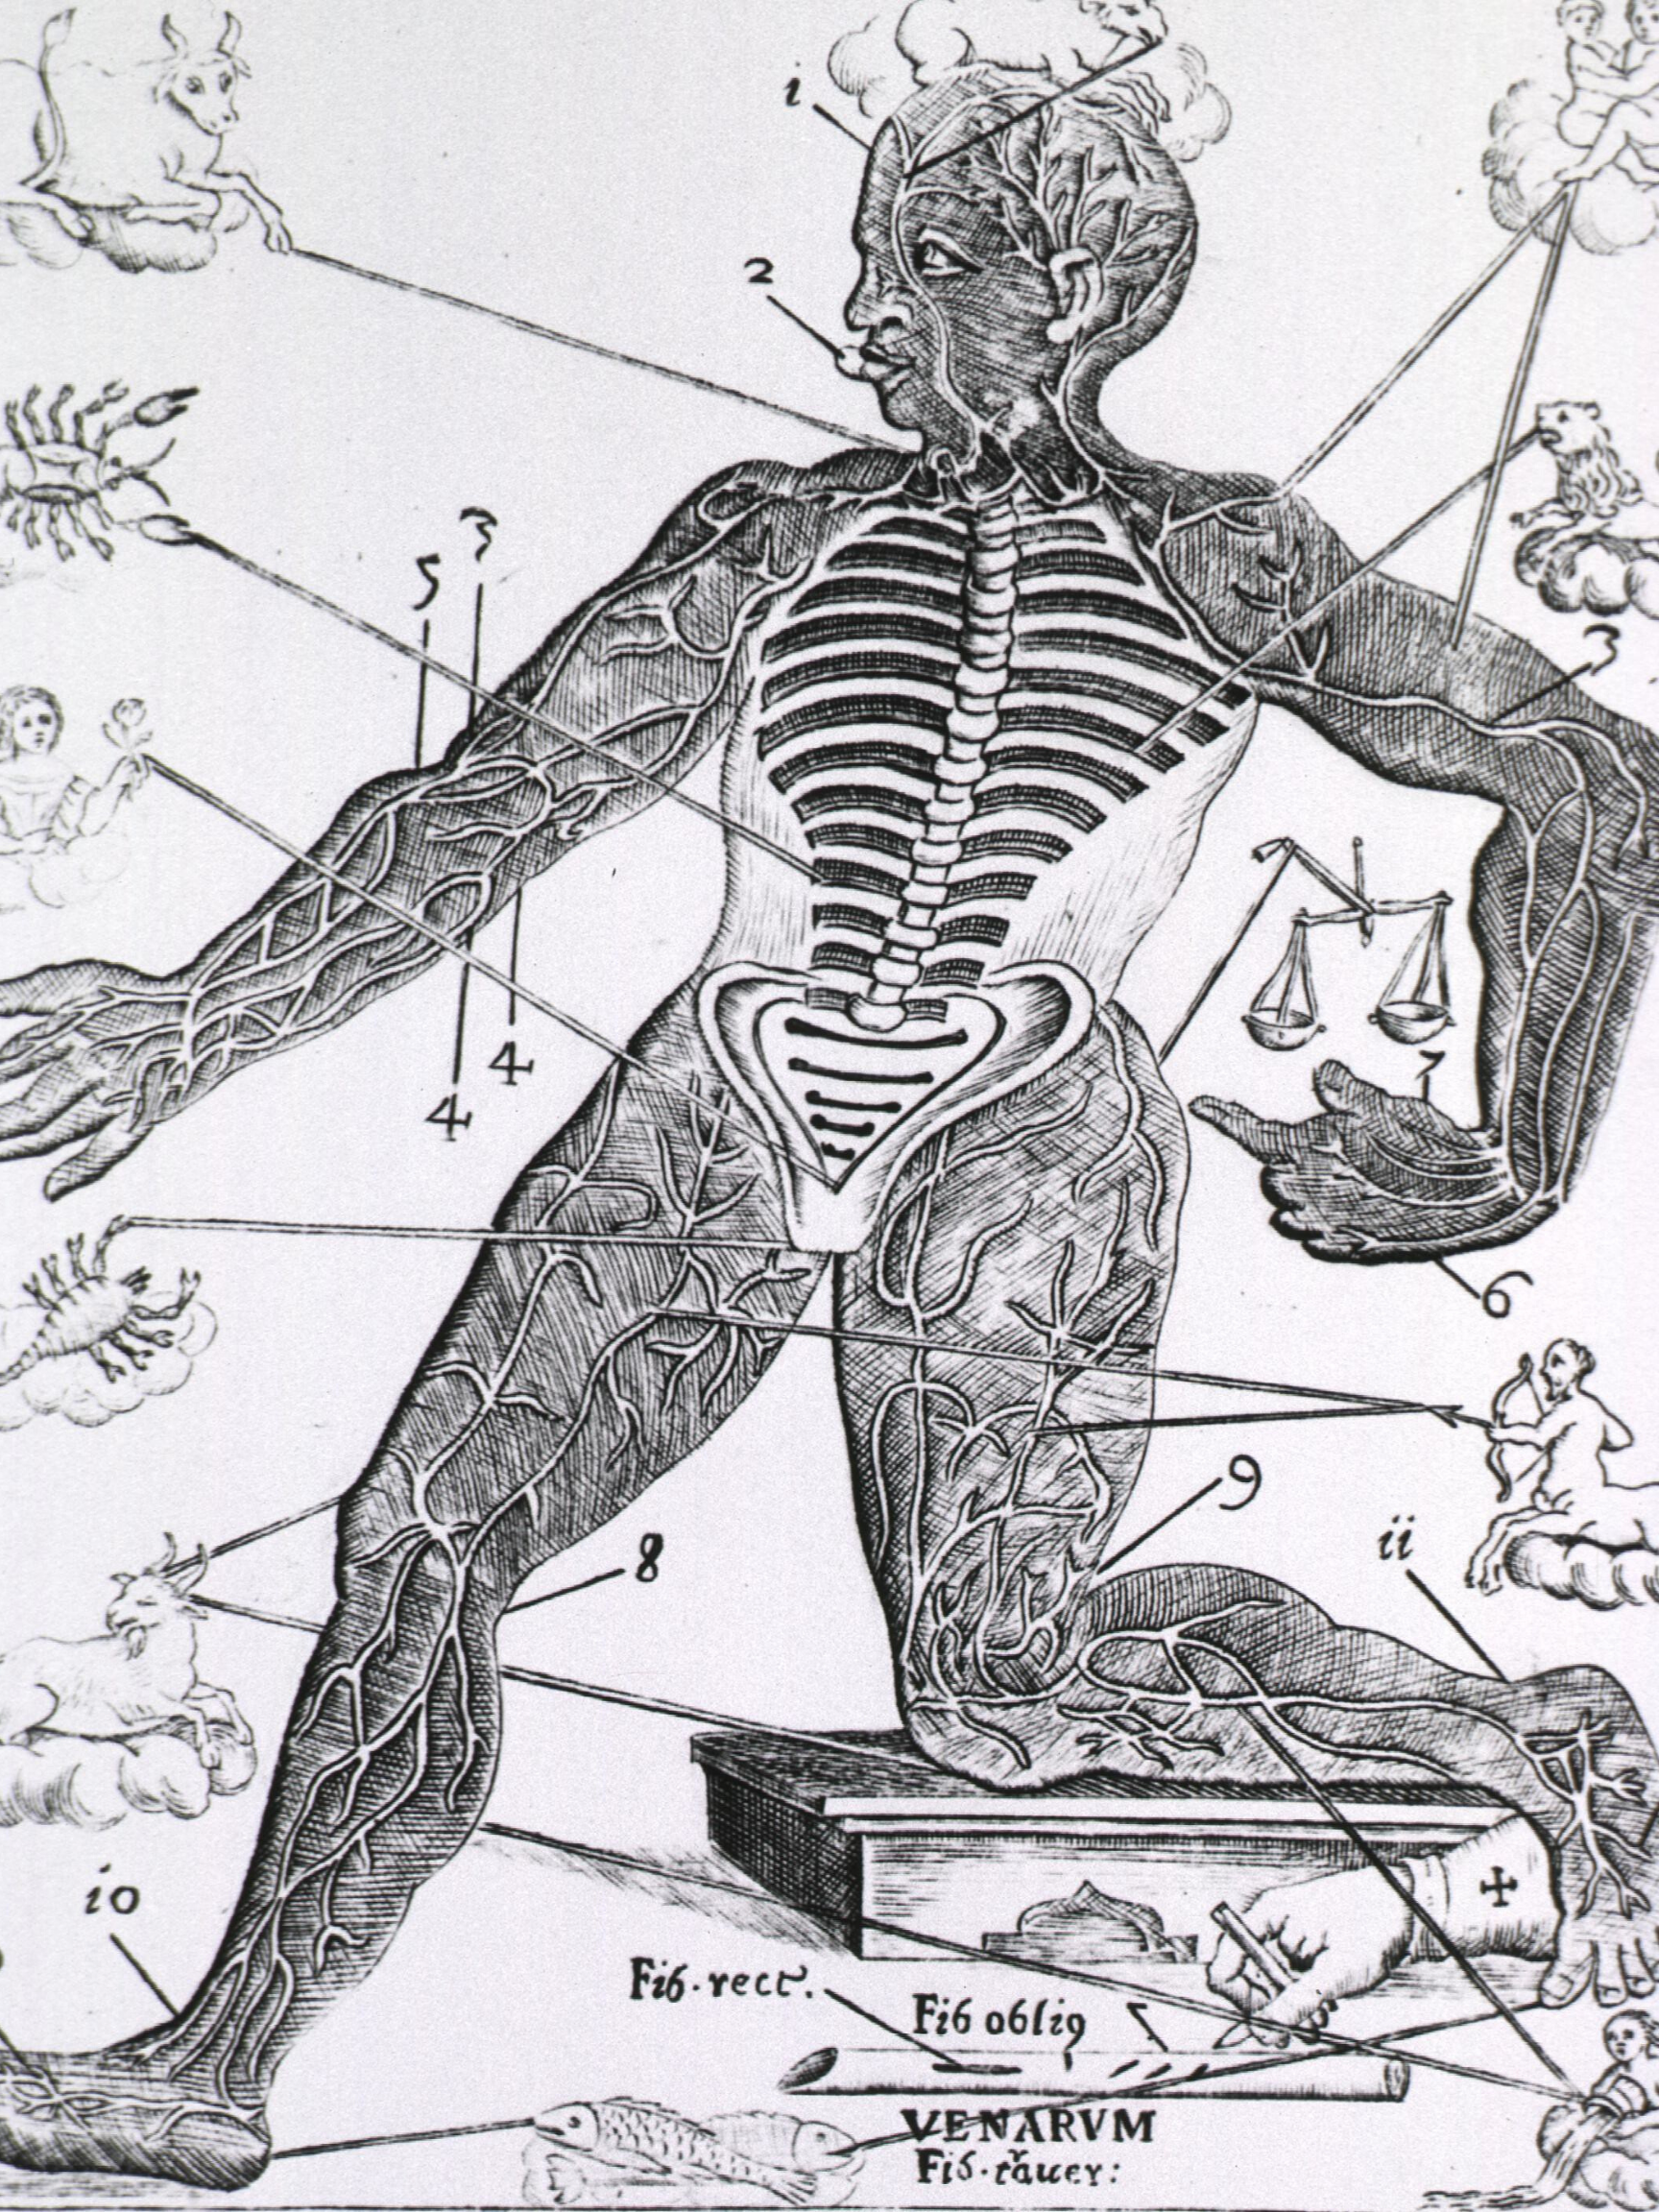 Zodiac-or-Vein-Man